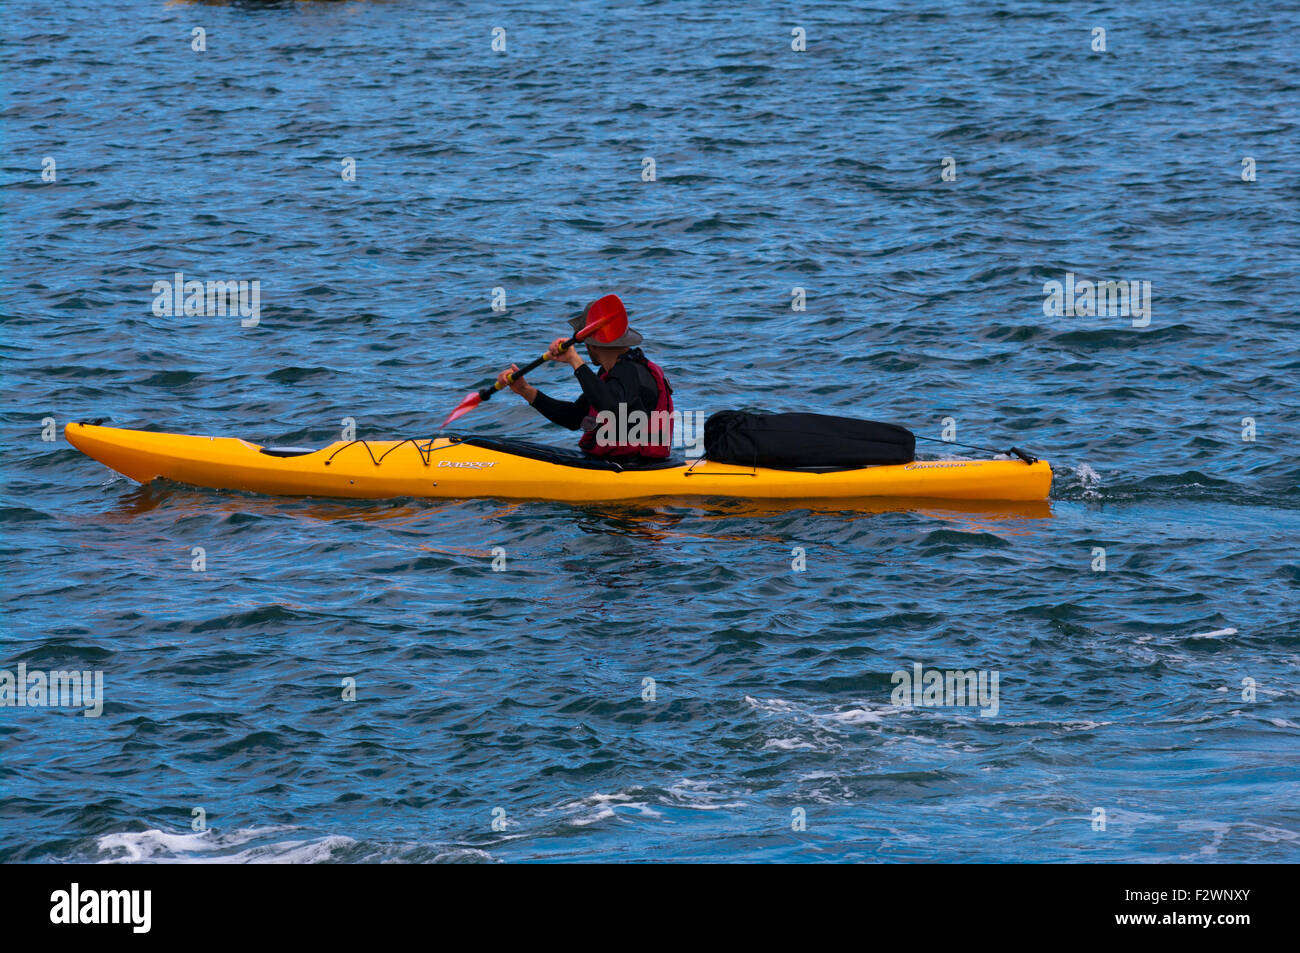 Side View Of A Person Paddling a Yellow Dagger Kayak - Stock Image